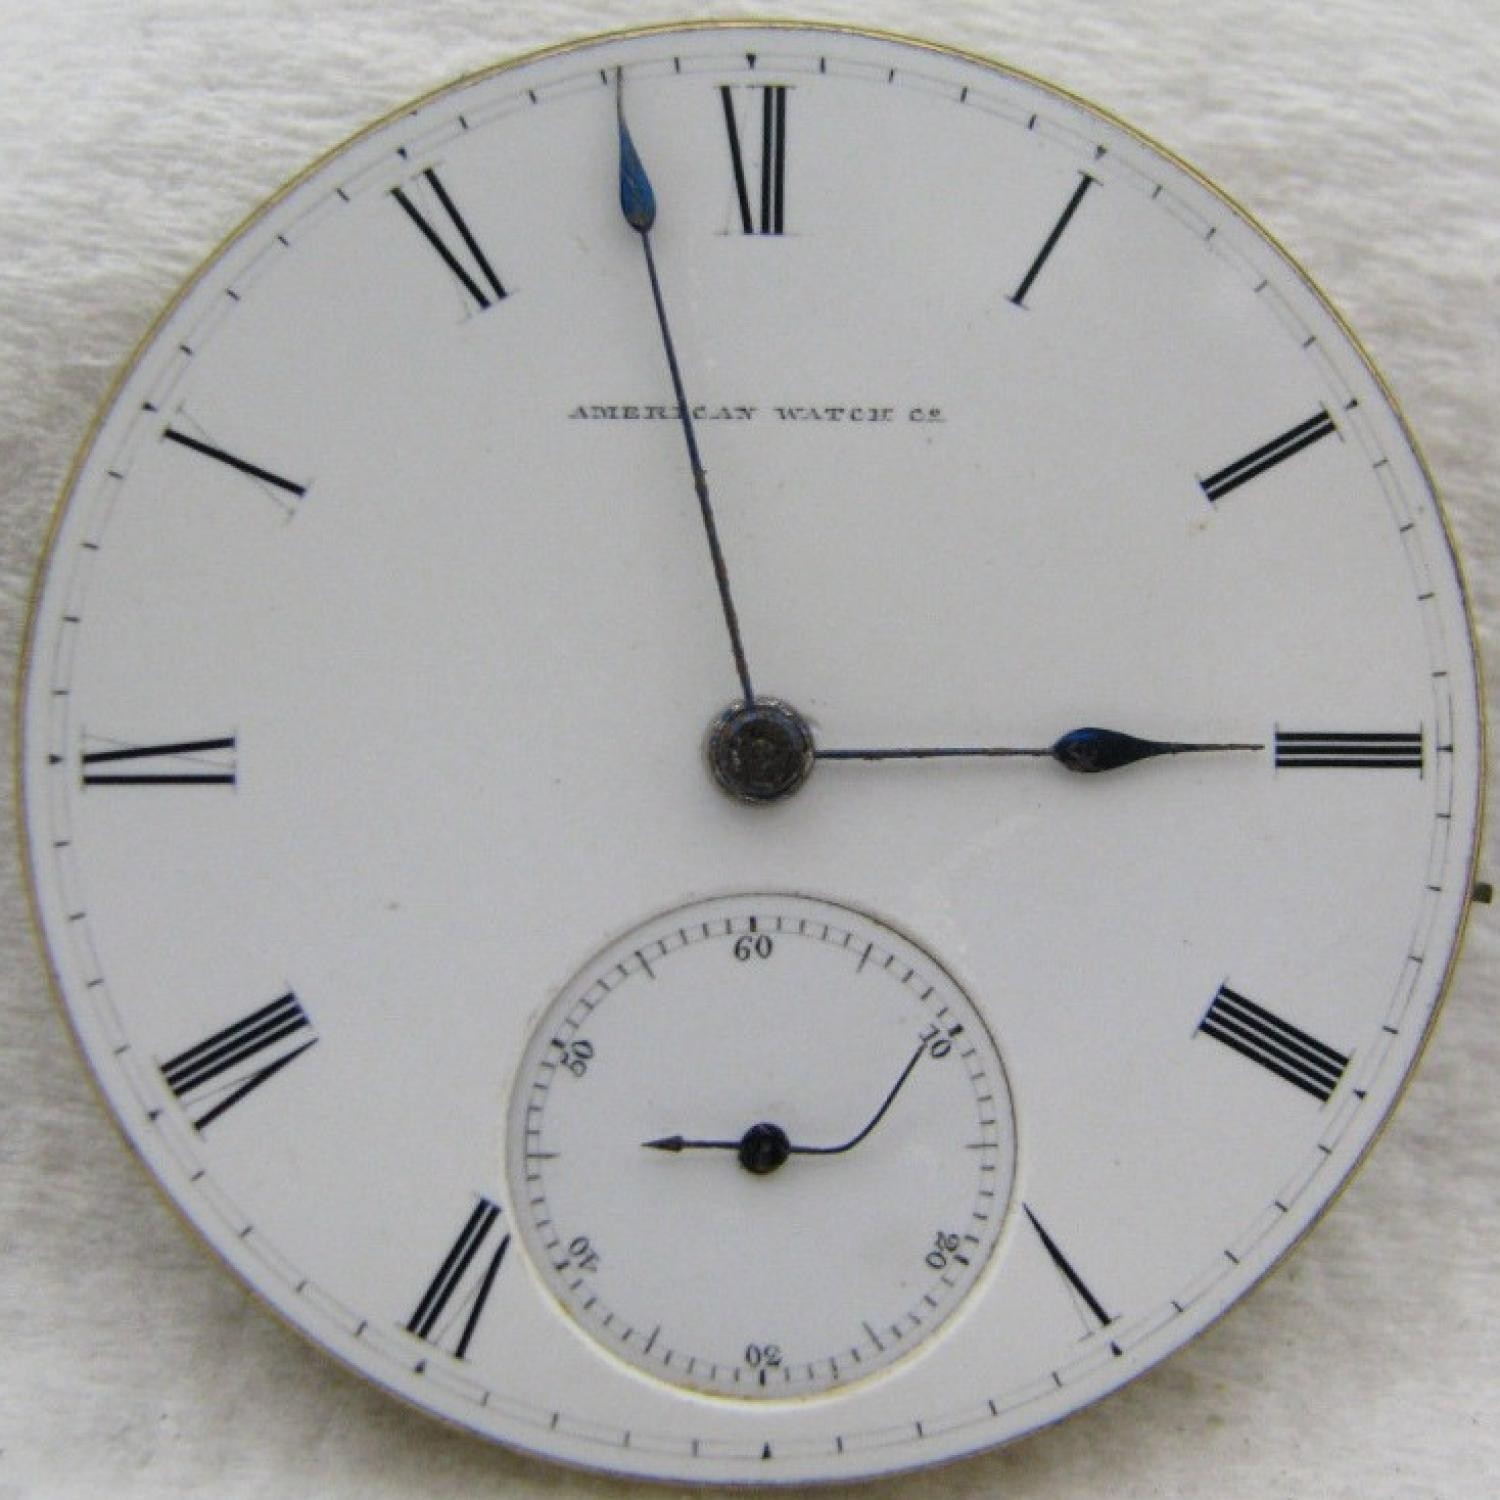 Image of Waltham A.T. & Co. #250913 Dial